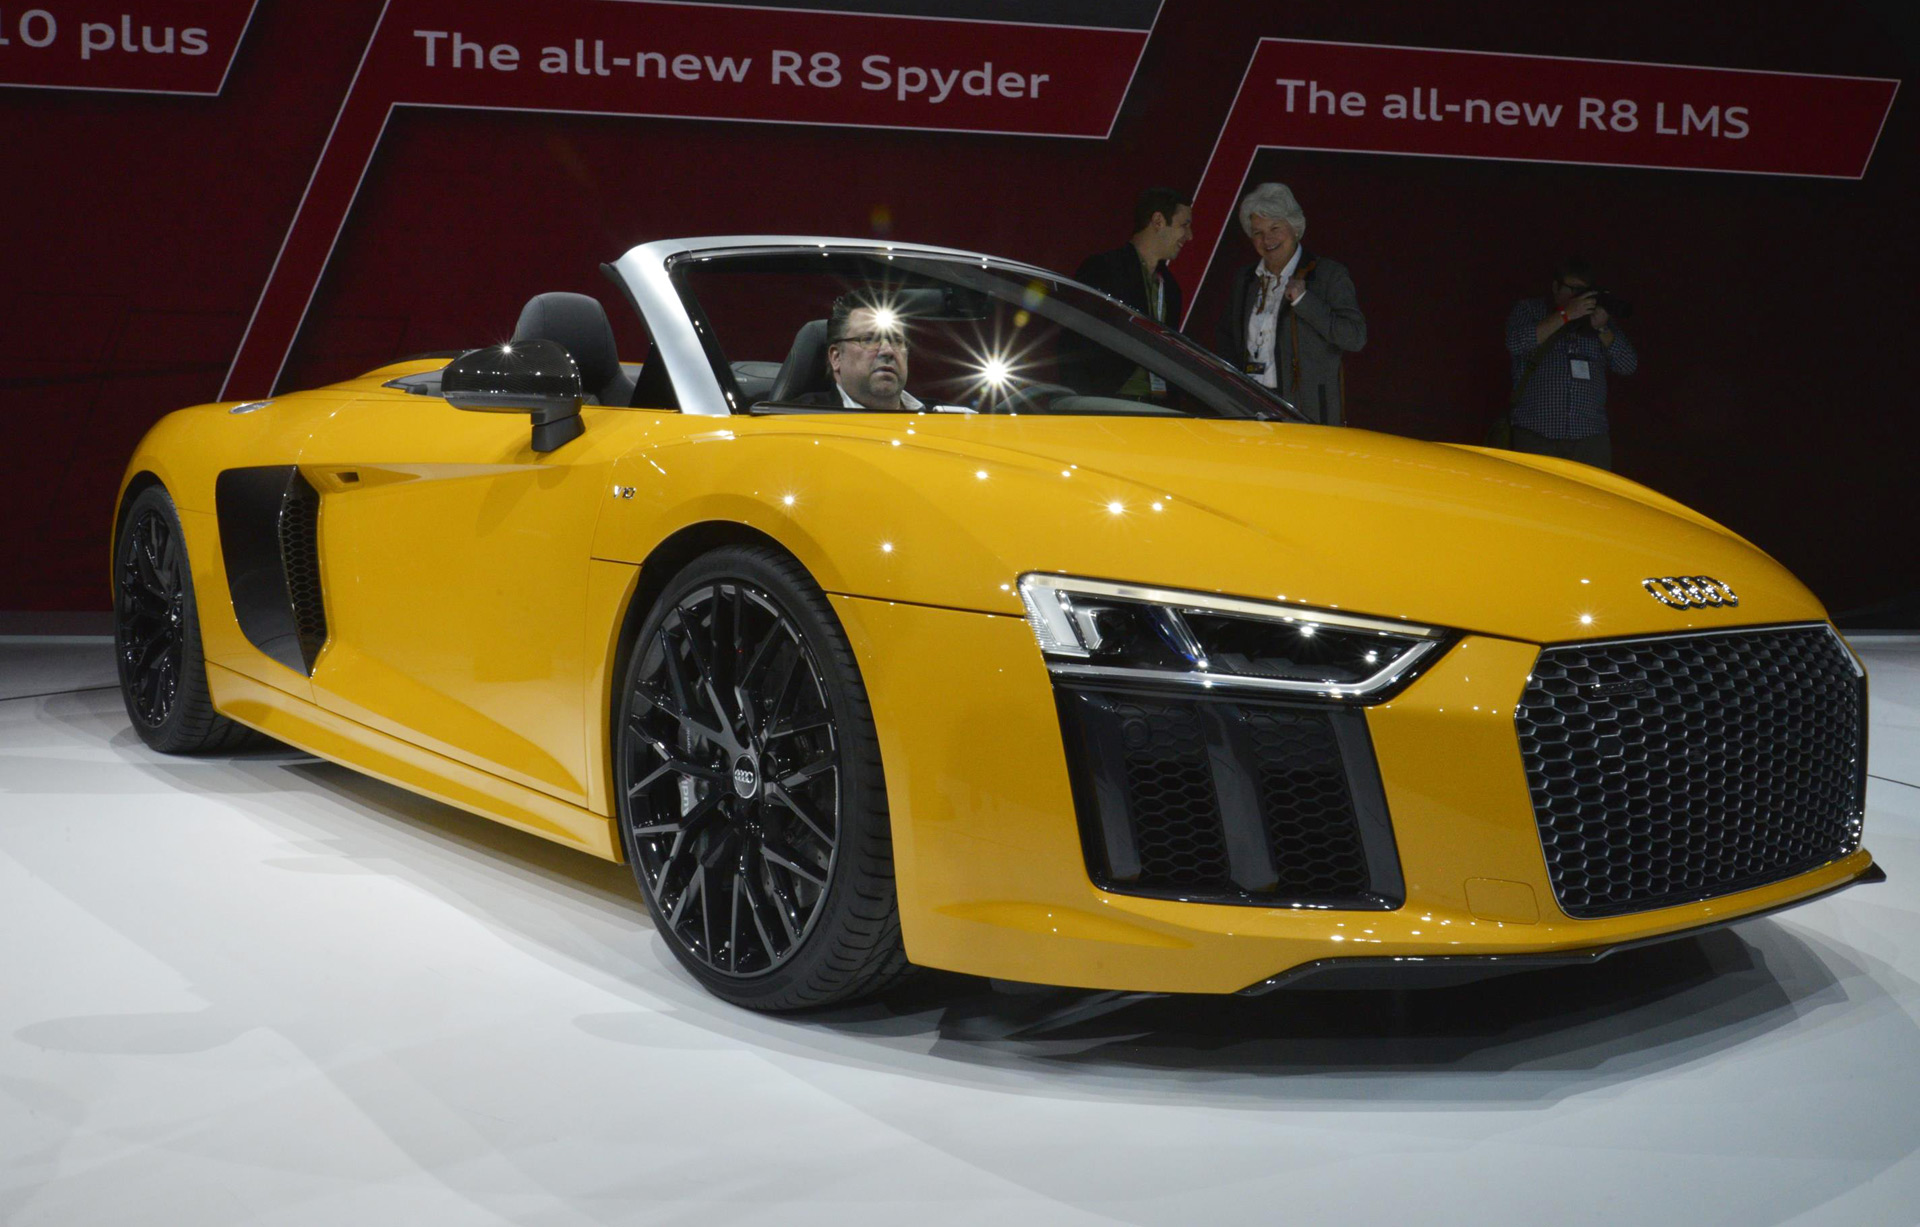 2017 Audi R8 V10 Spyder Priced From 176350 V 10 Soundtrack Standard